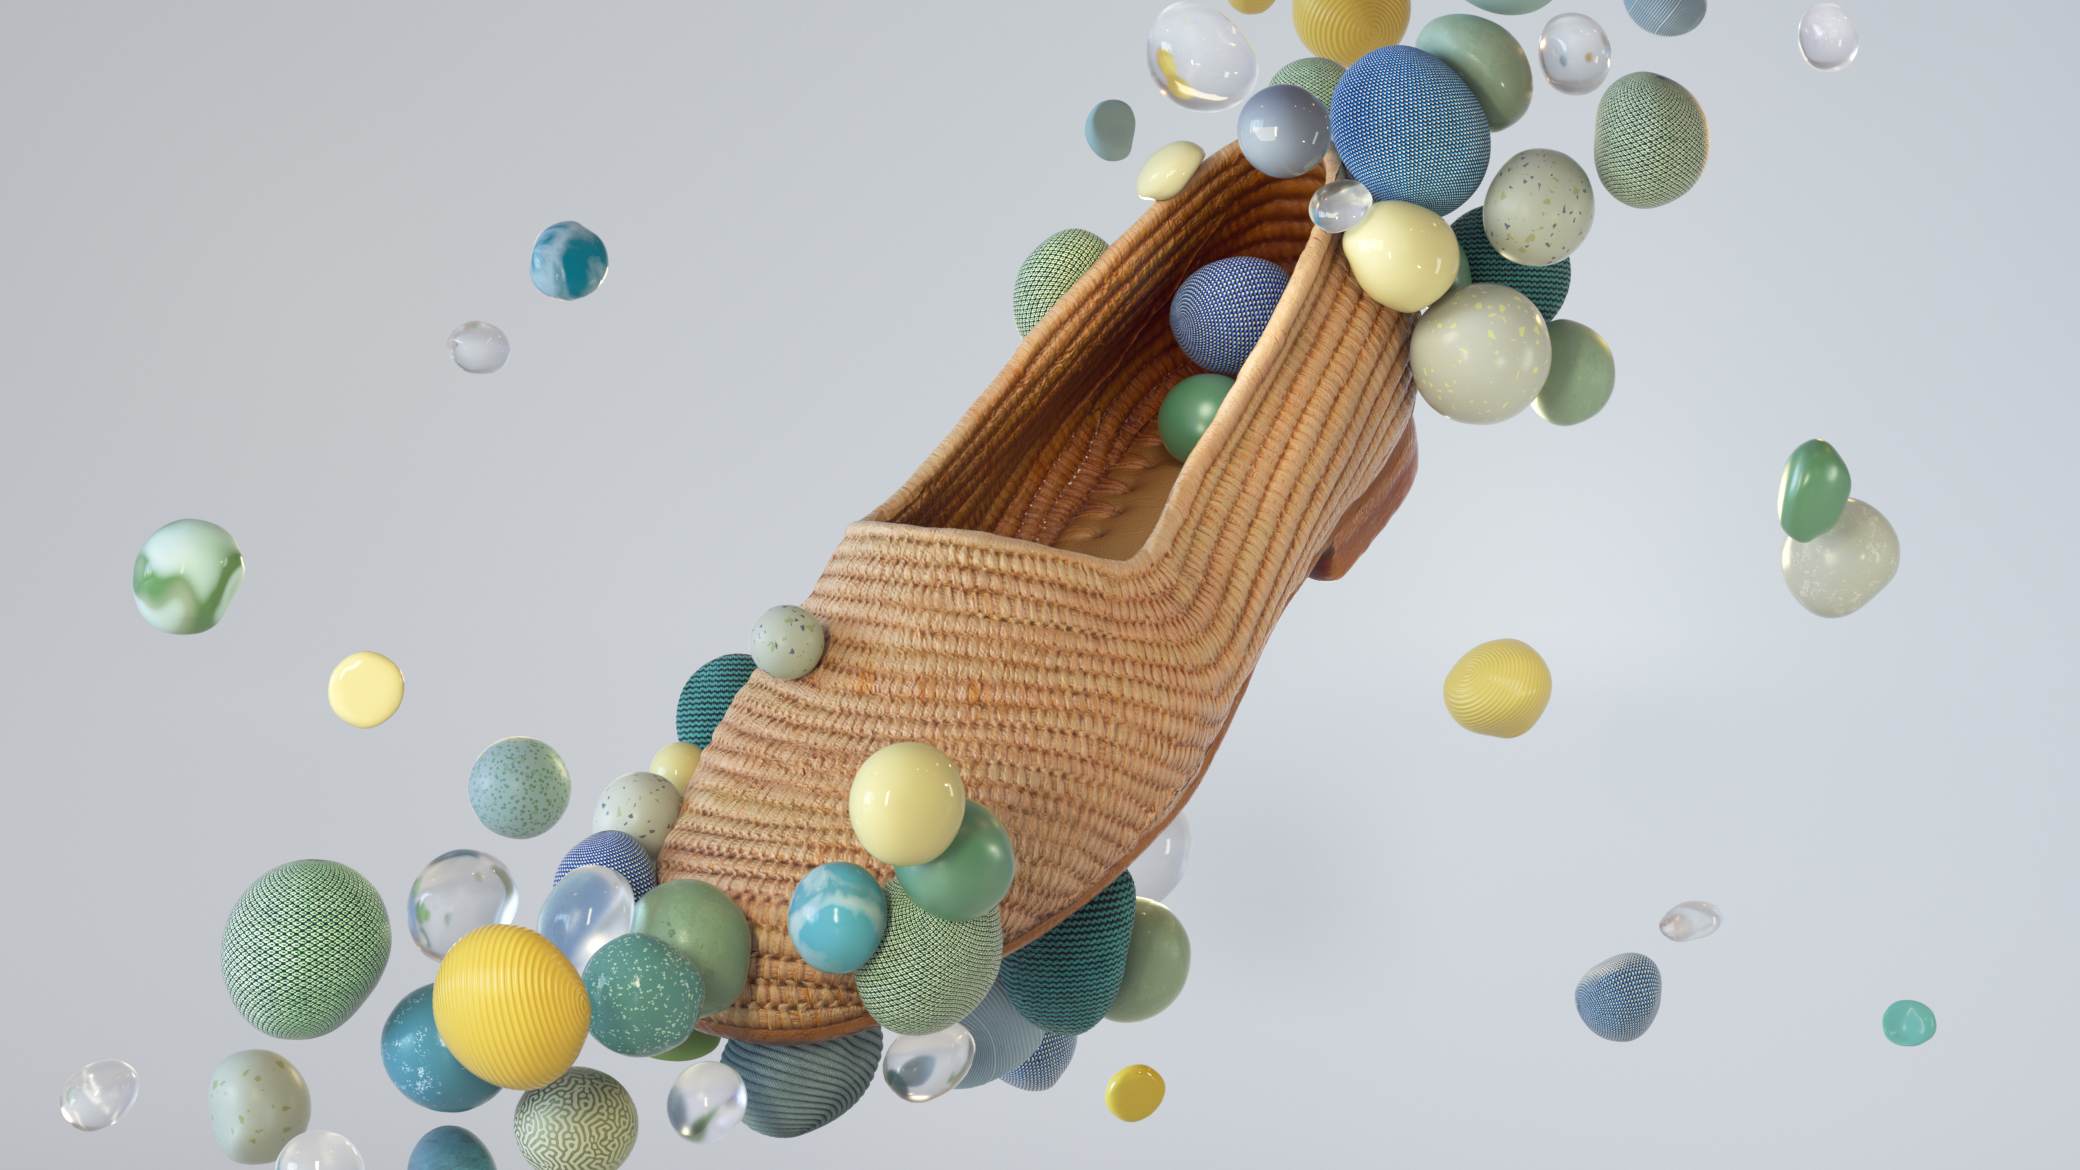 These images are developed from photogrammetric models. After working with c4d and octane render